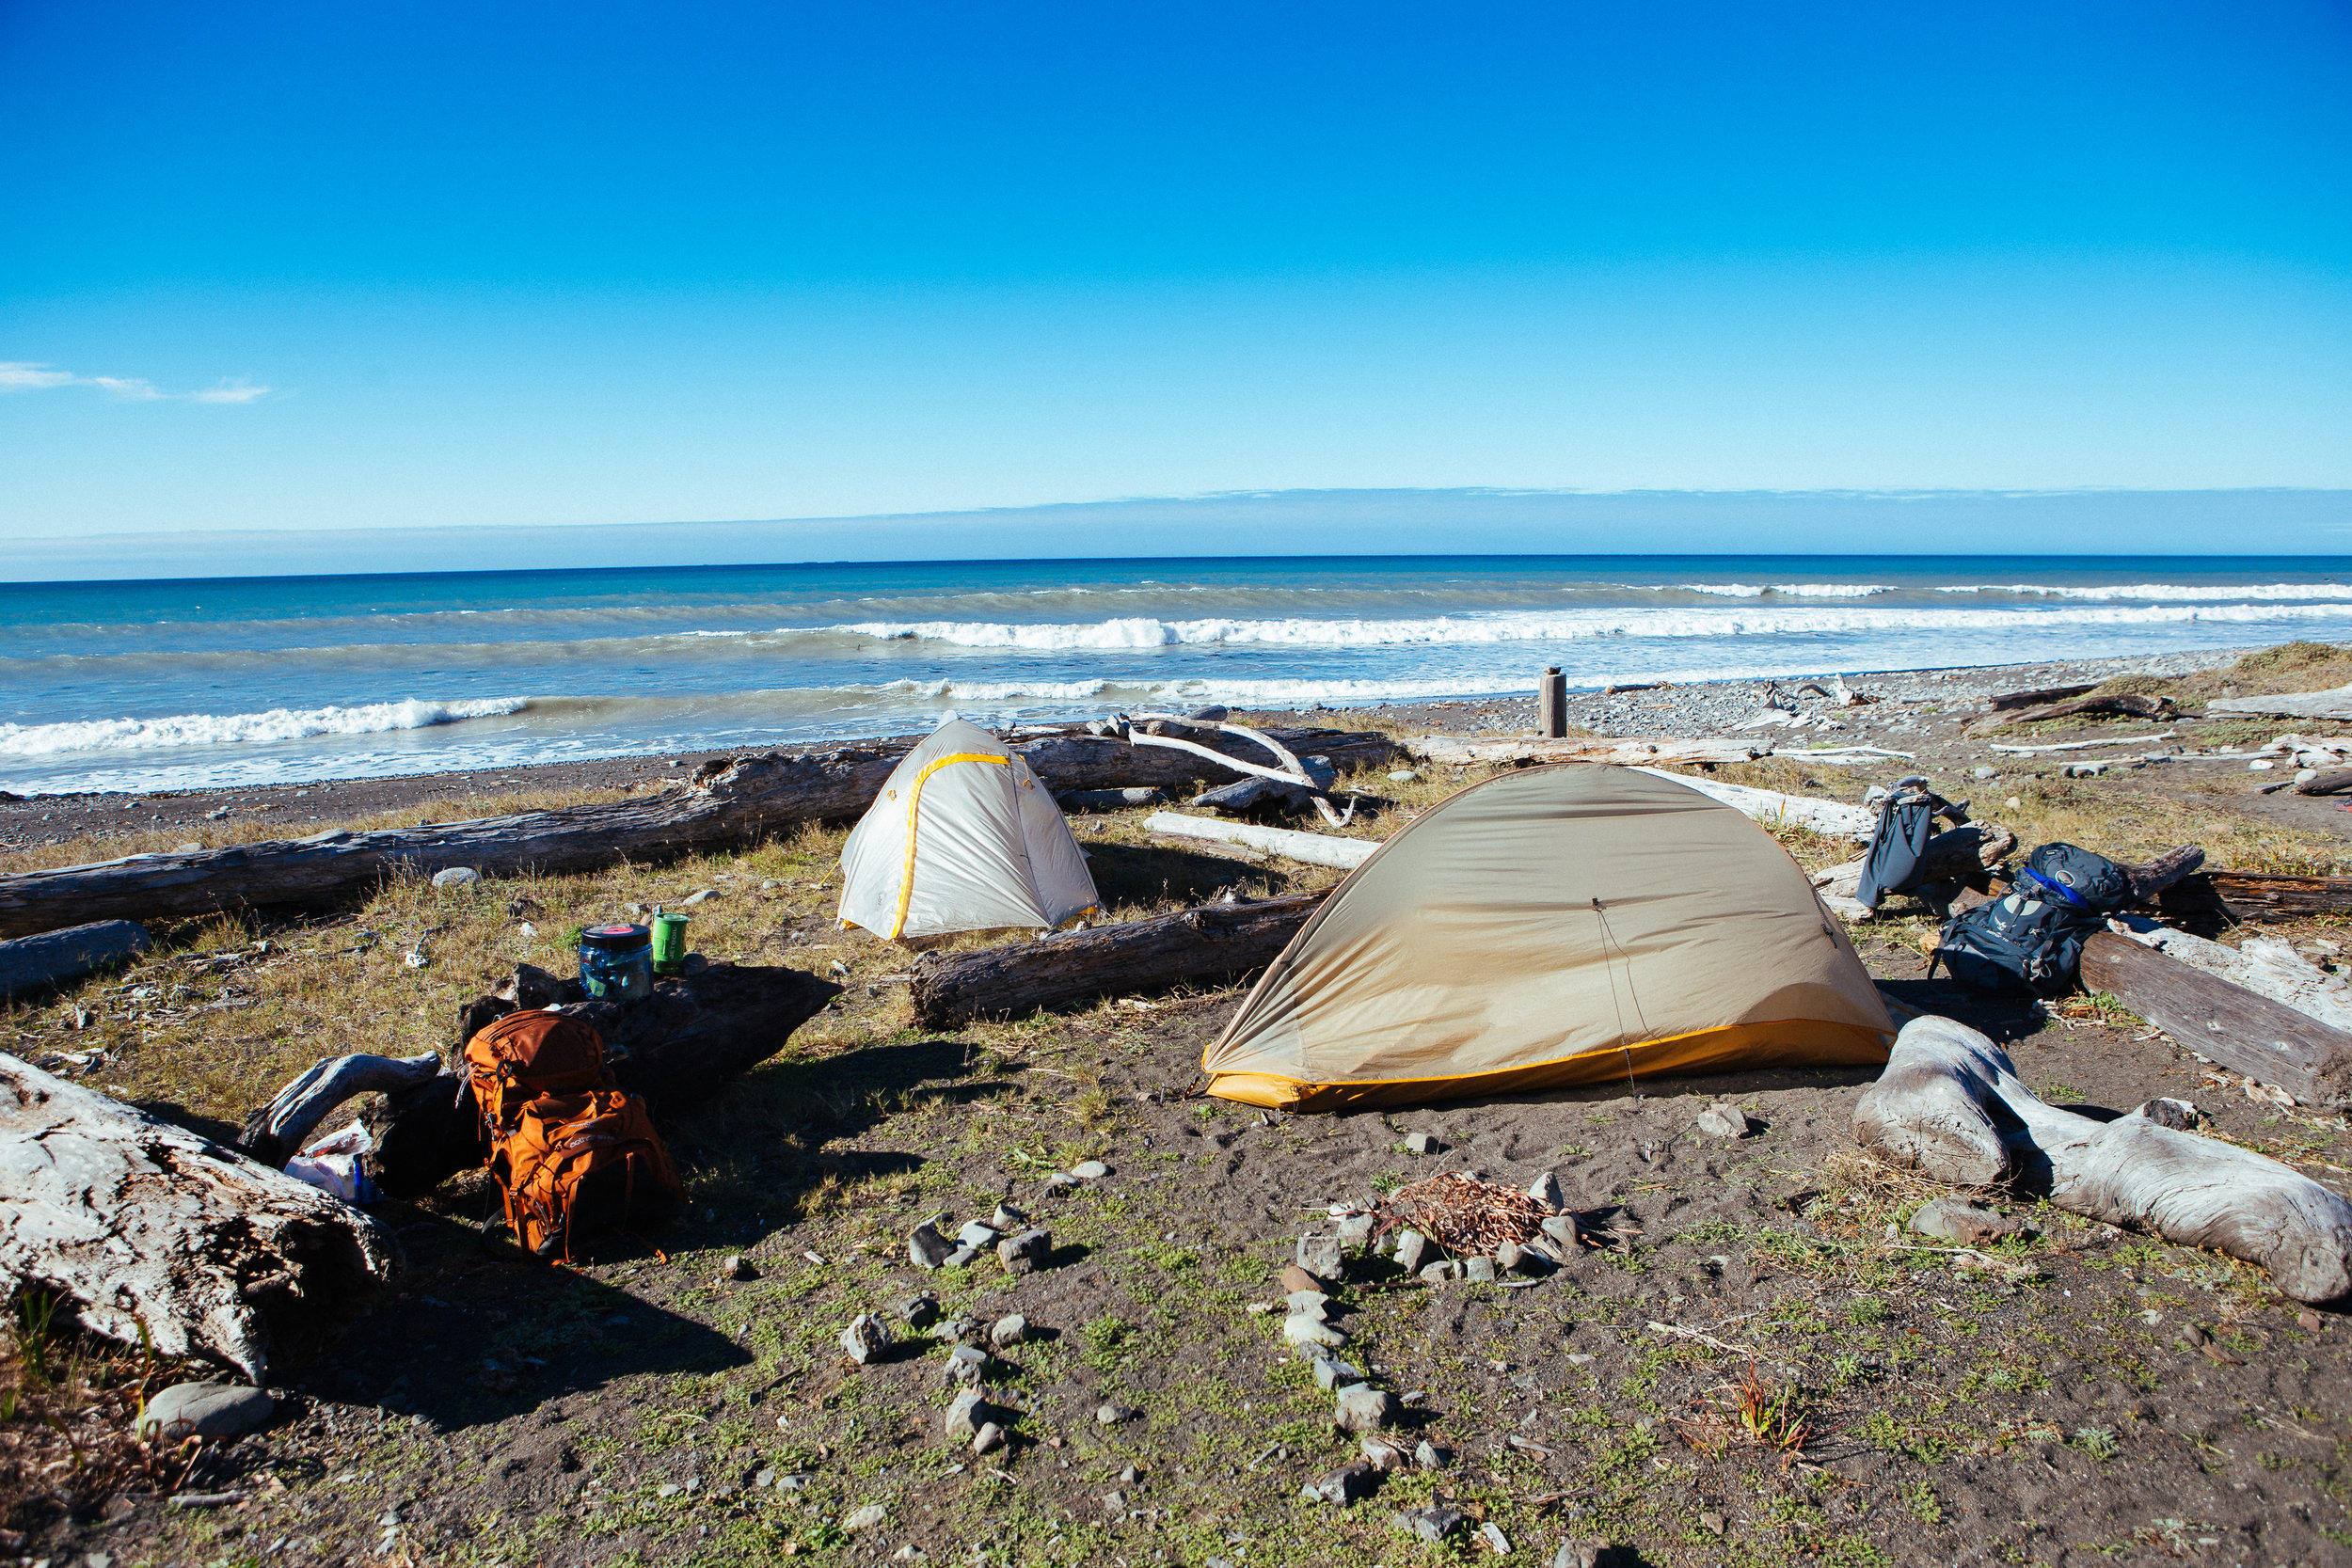 Woke up like dis. (Pretty stoked on my gear; tent is the Big Agnes Fly Creek HV UL2 & pack is the Osprey Aether AG 60)